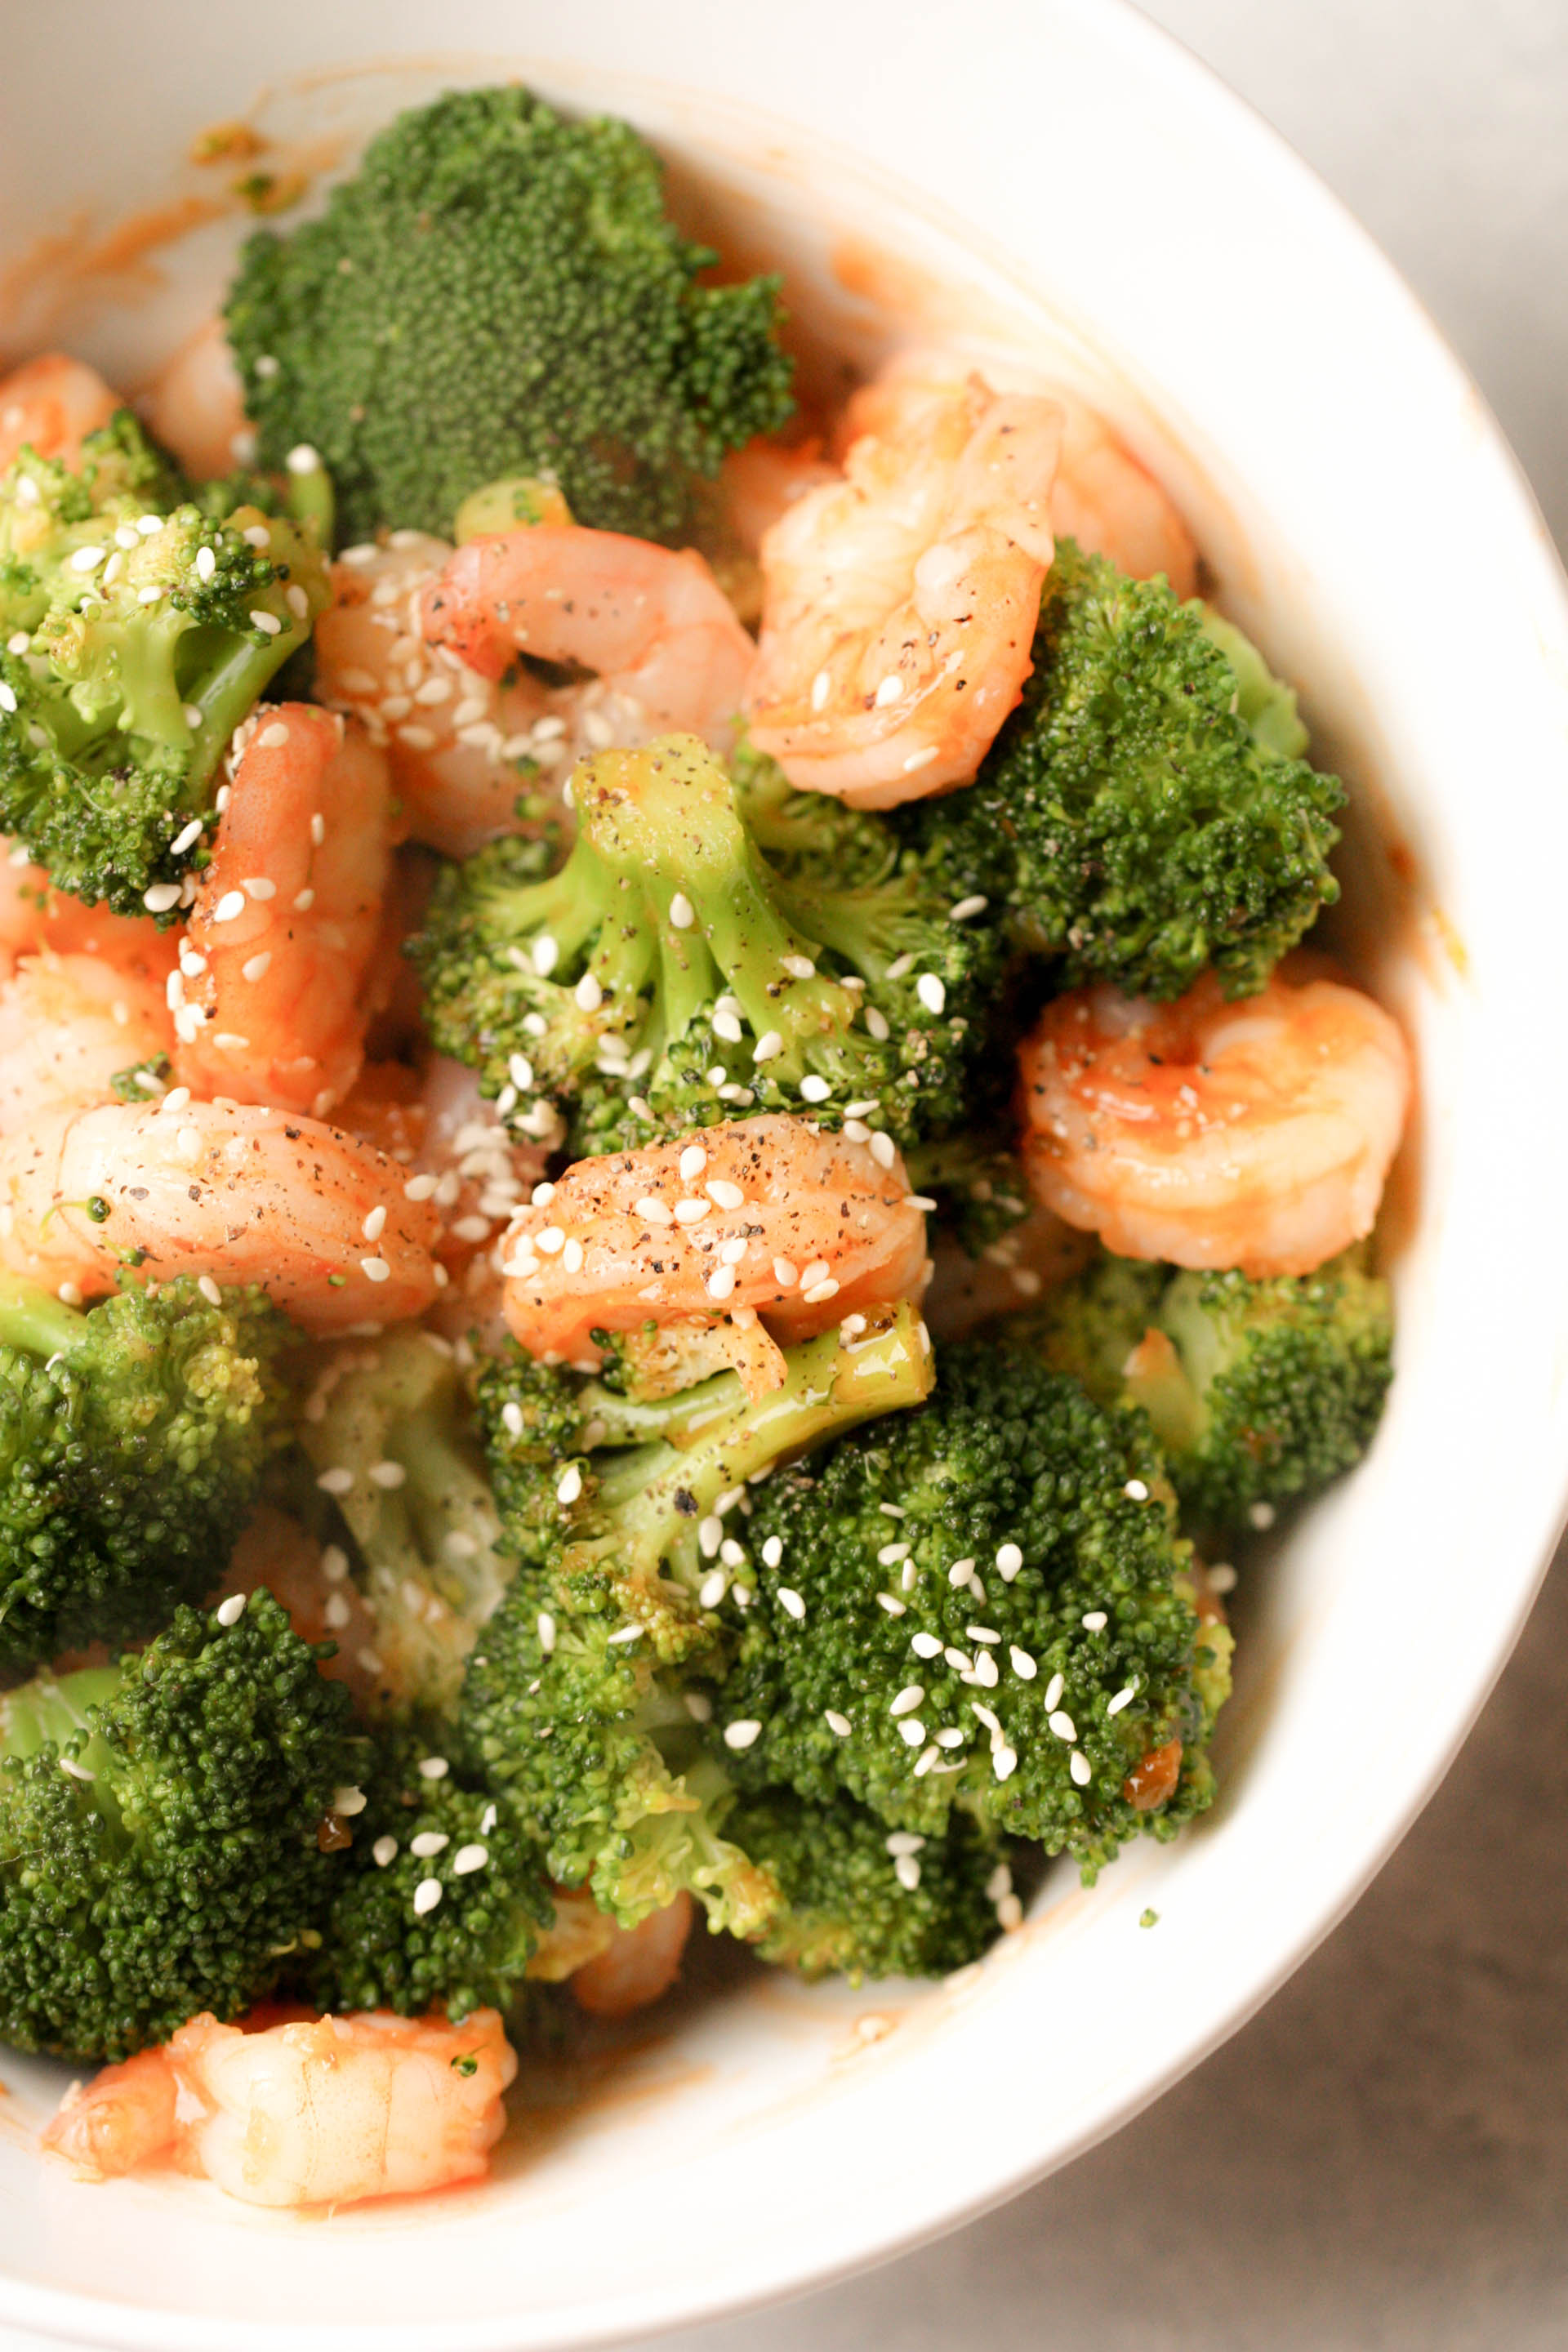 Sweet and Sour Shrimp and Broccoli